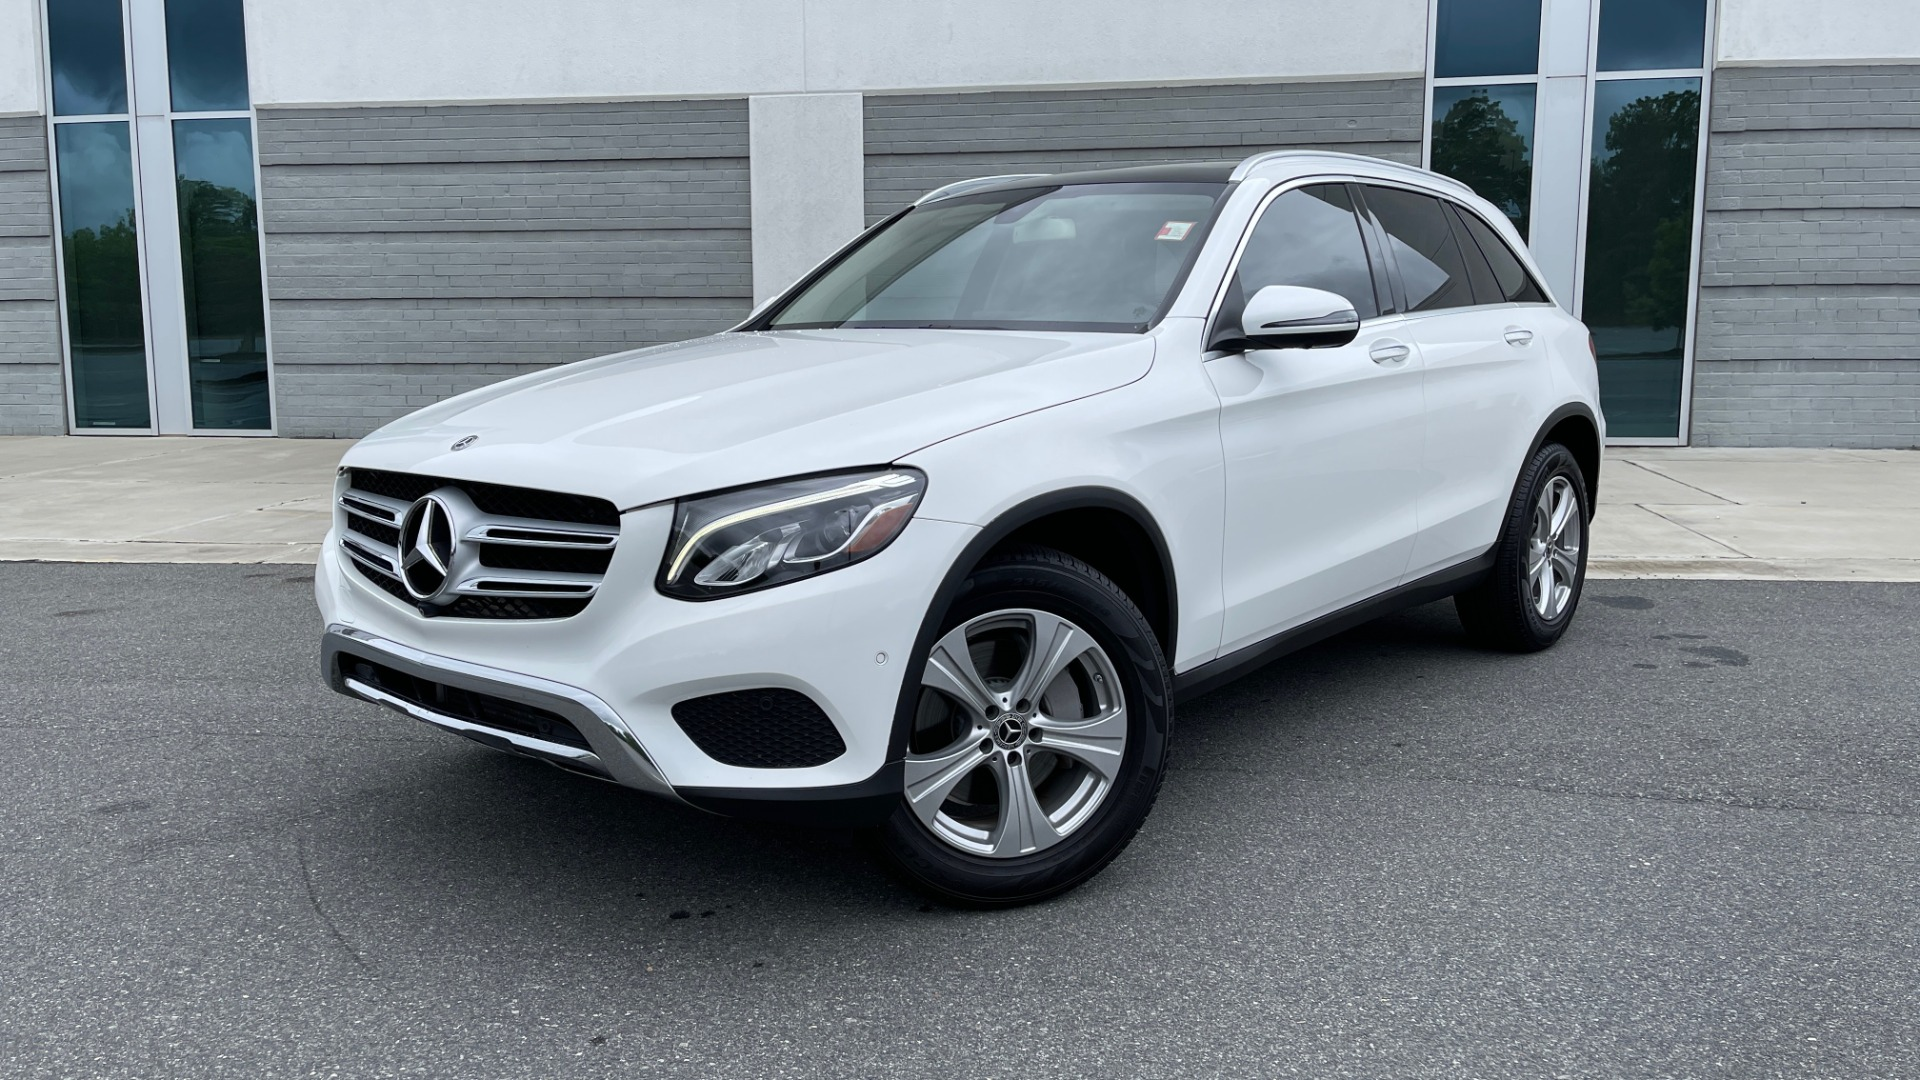 Used 2018 Mercedes-Benz GLC 300 PREMIUM / PANO-ROOF / HTD STS / PARK ASST / REARVIEW for sale $34,613 at Formula Imports in Charlotte NC 28227 1